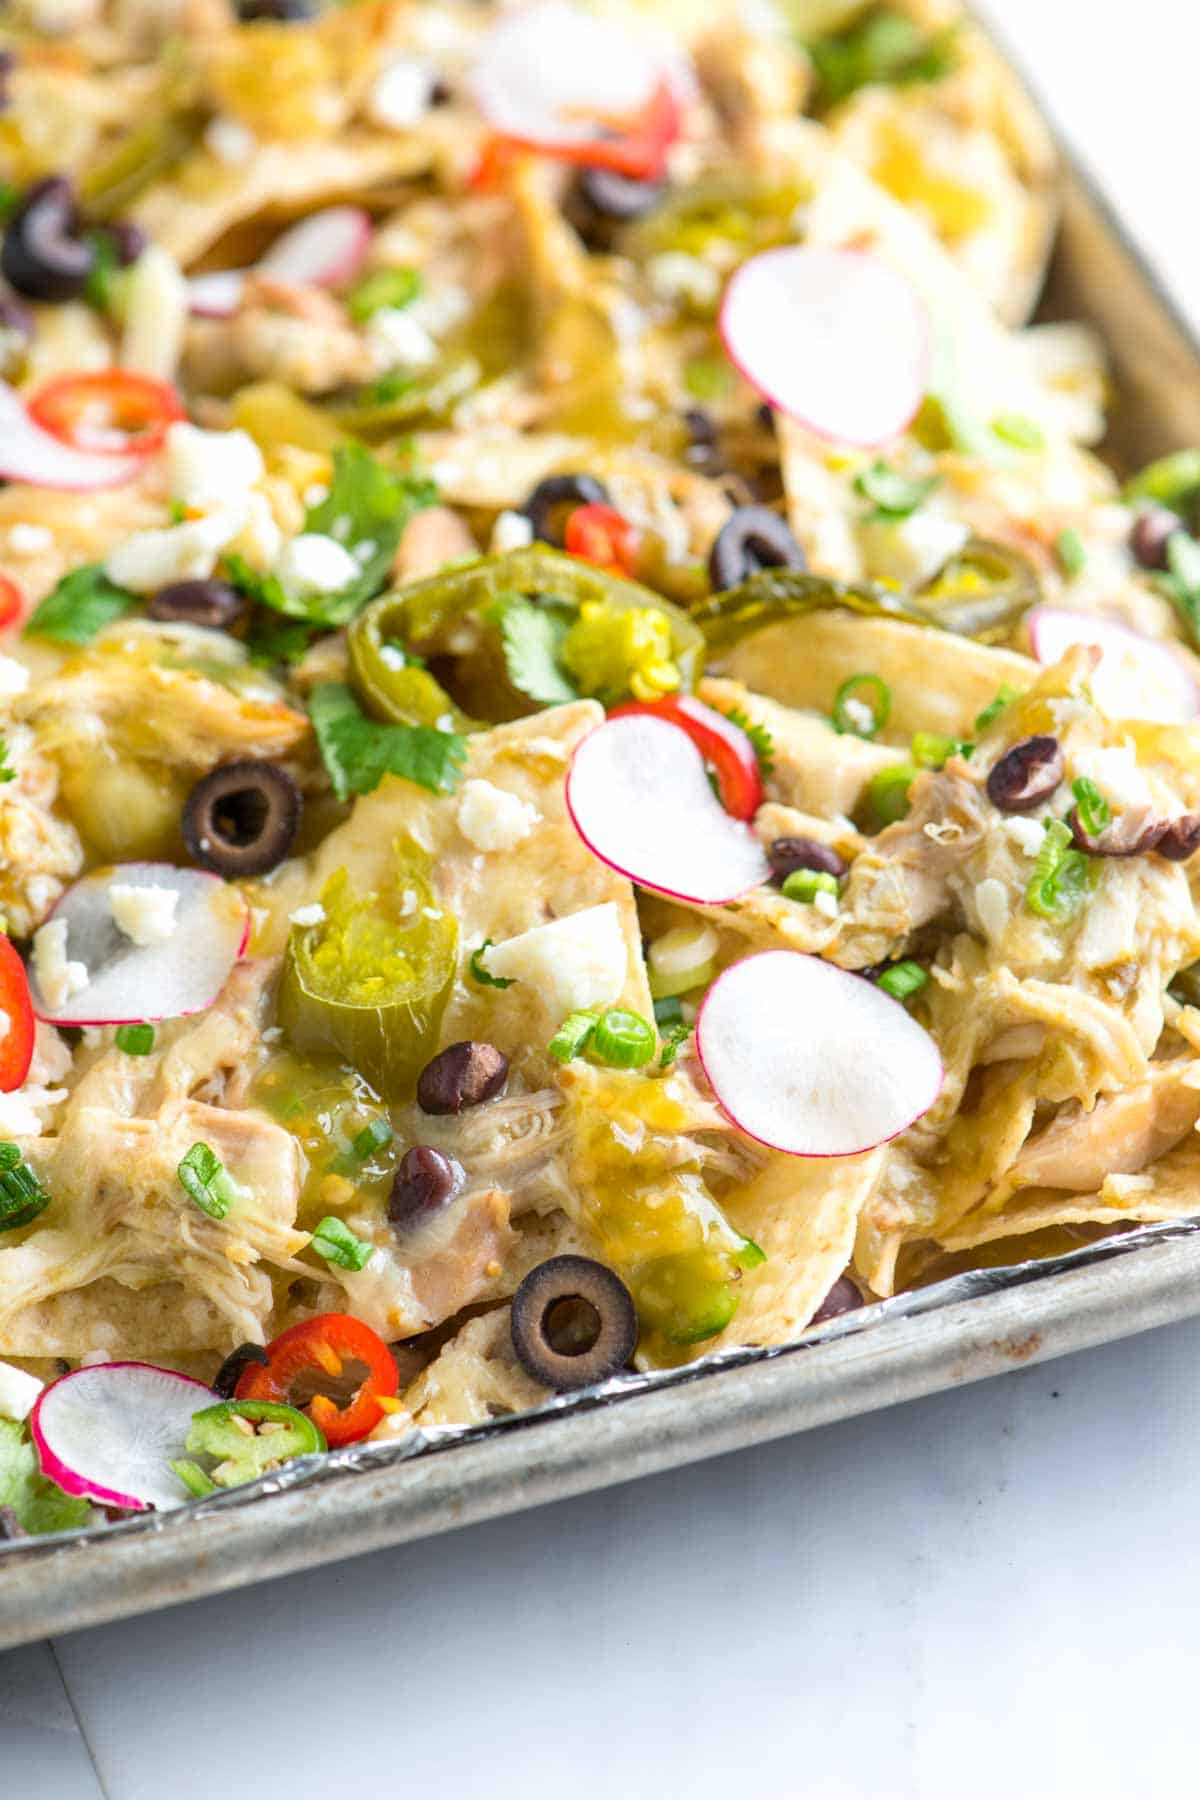 Loaded Nachos with Chicken and Lots of Toppings